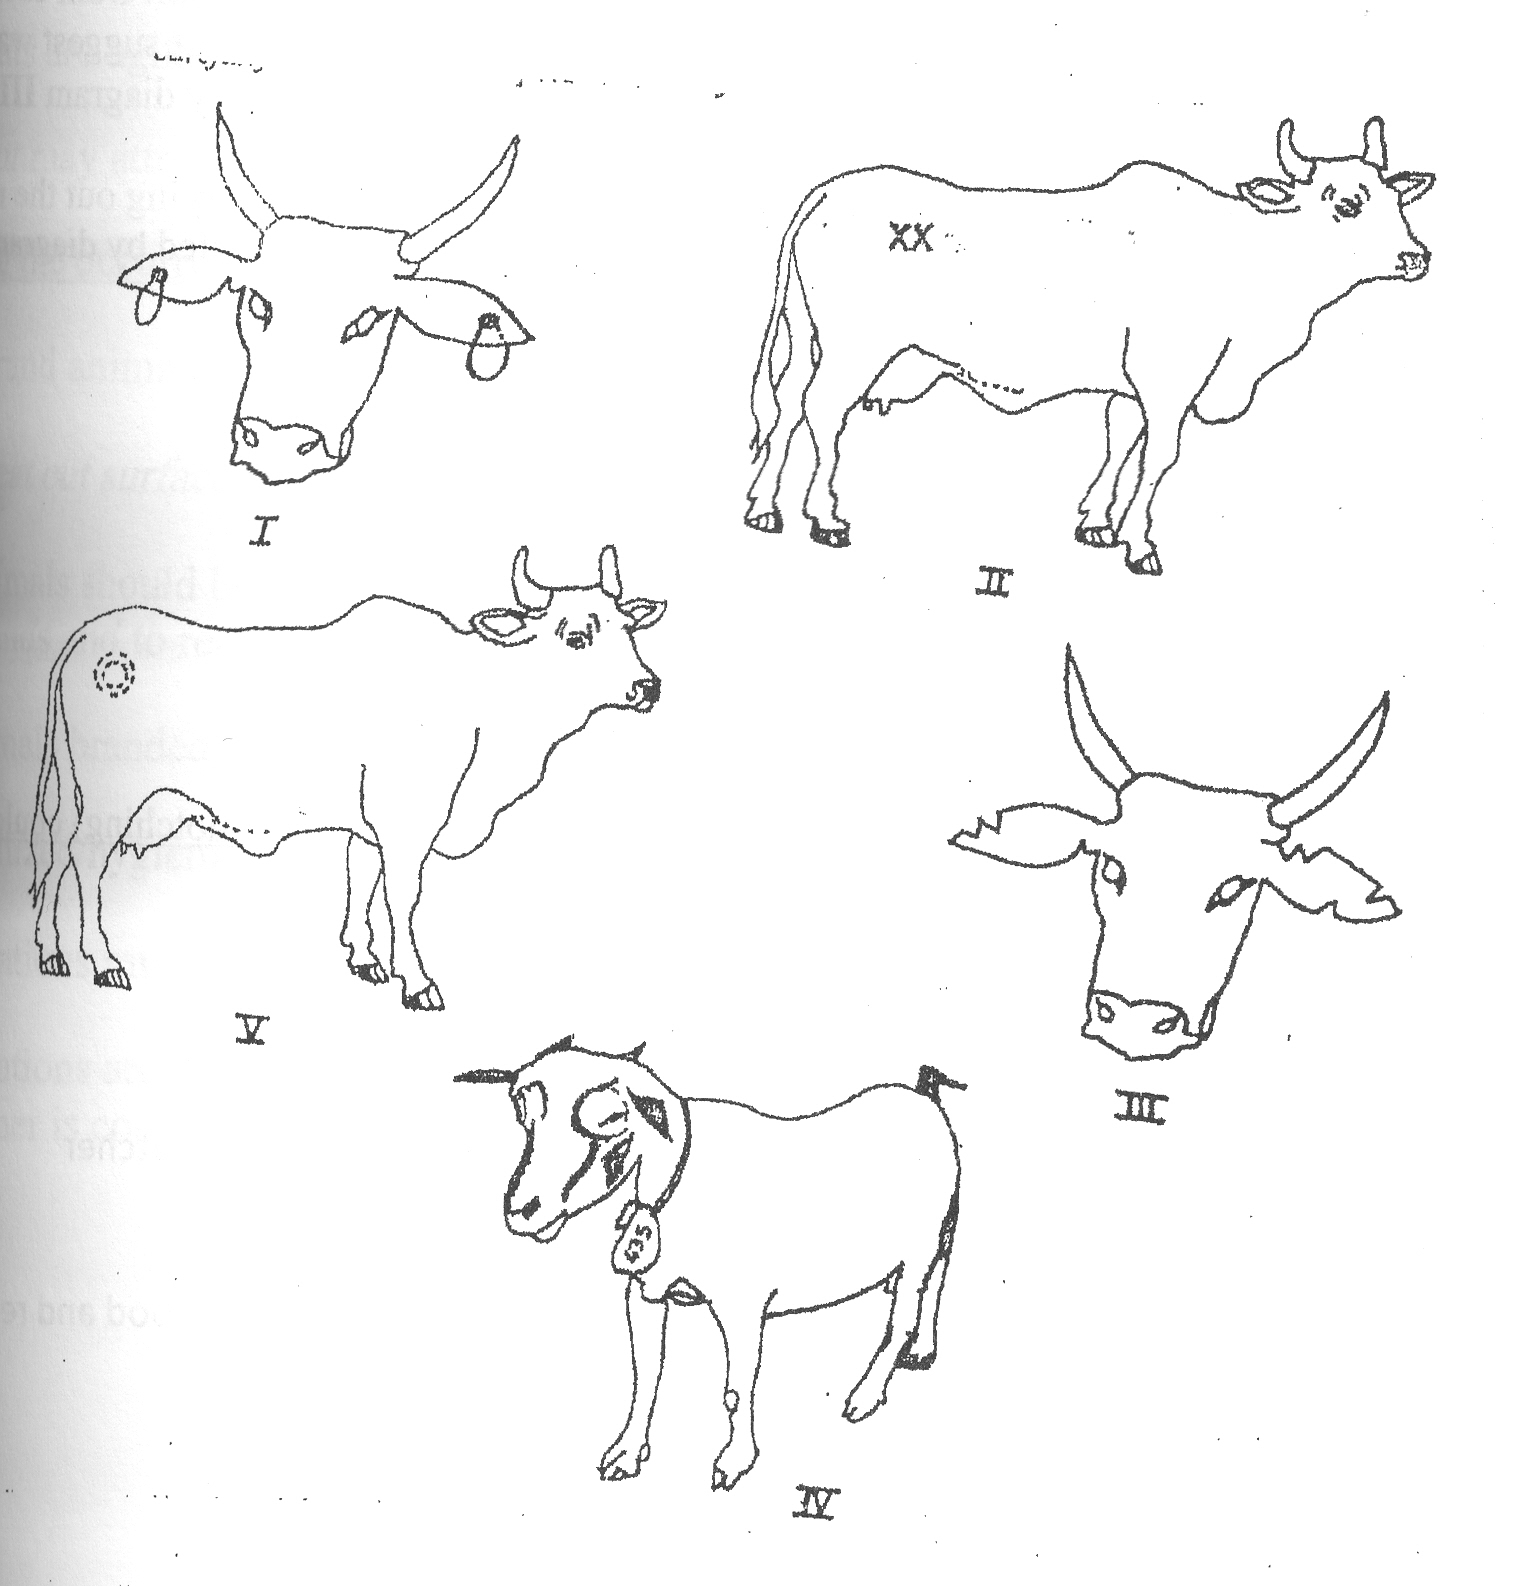 Agricultural science 3 novdec 2009 state the methods of identification illustrated by the diagrams ccuart Gallery